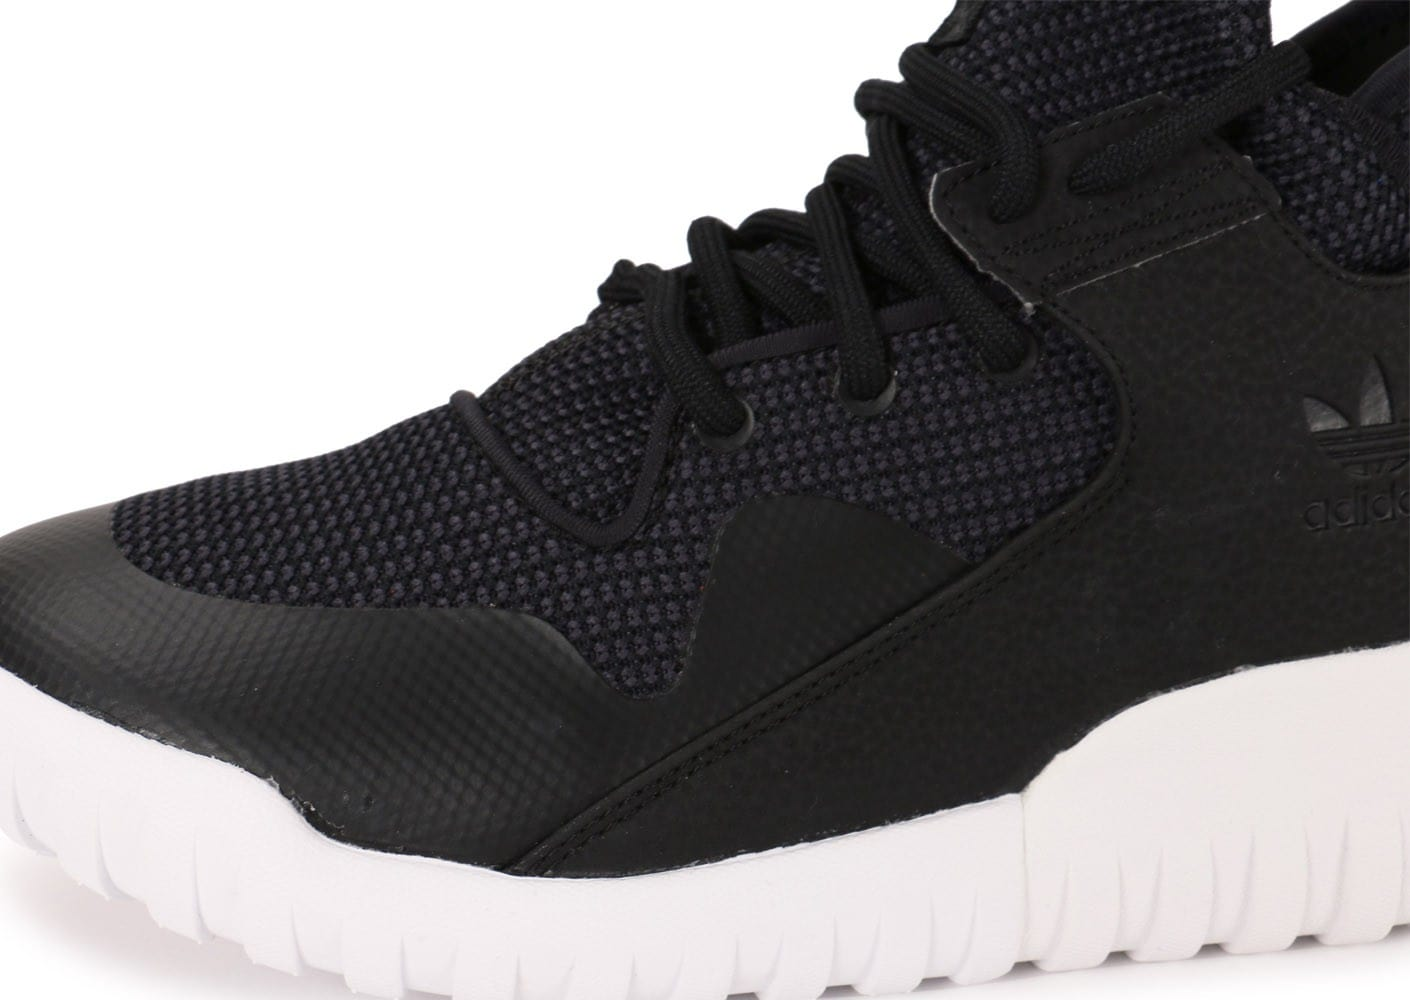 Chausport Adidas X Chaussures Baskets Homme Circular Tubular Noire odCexB